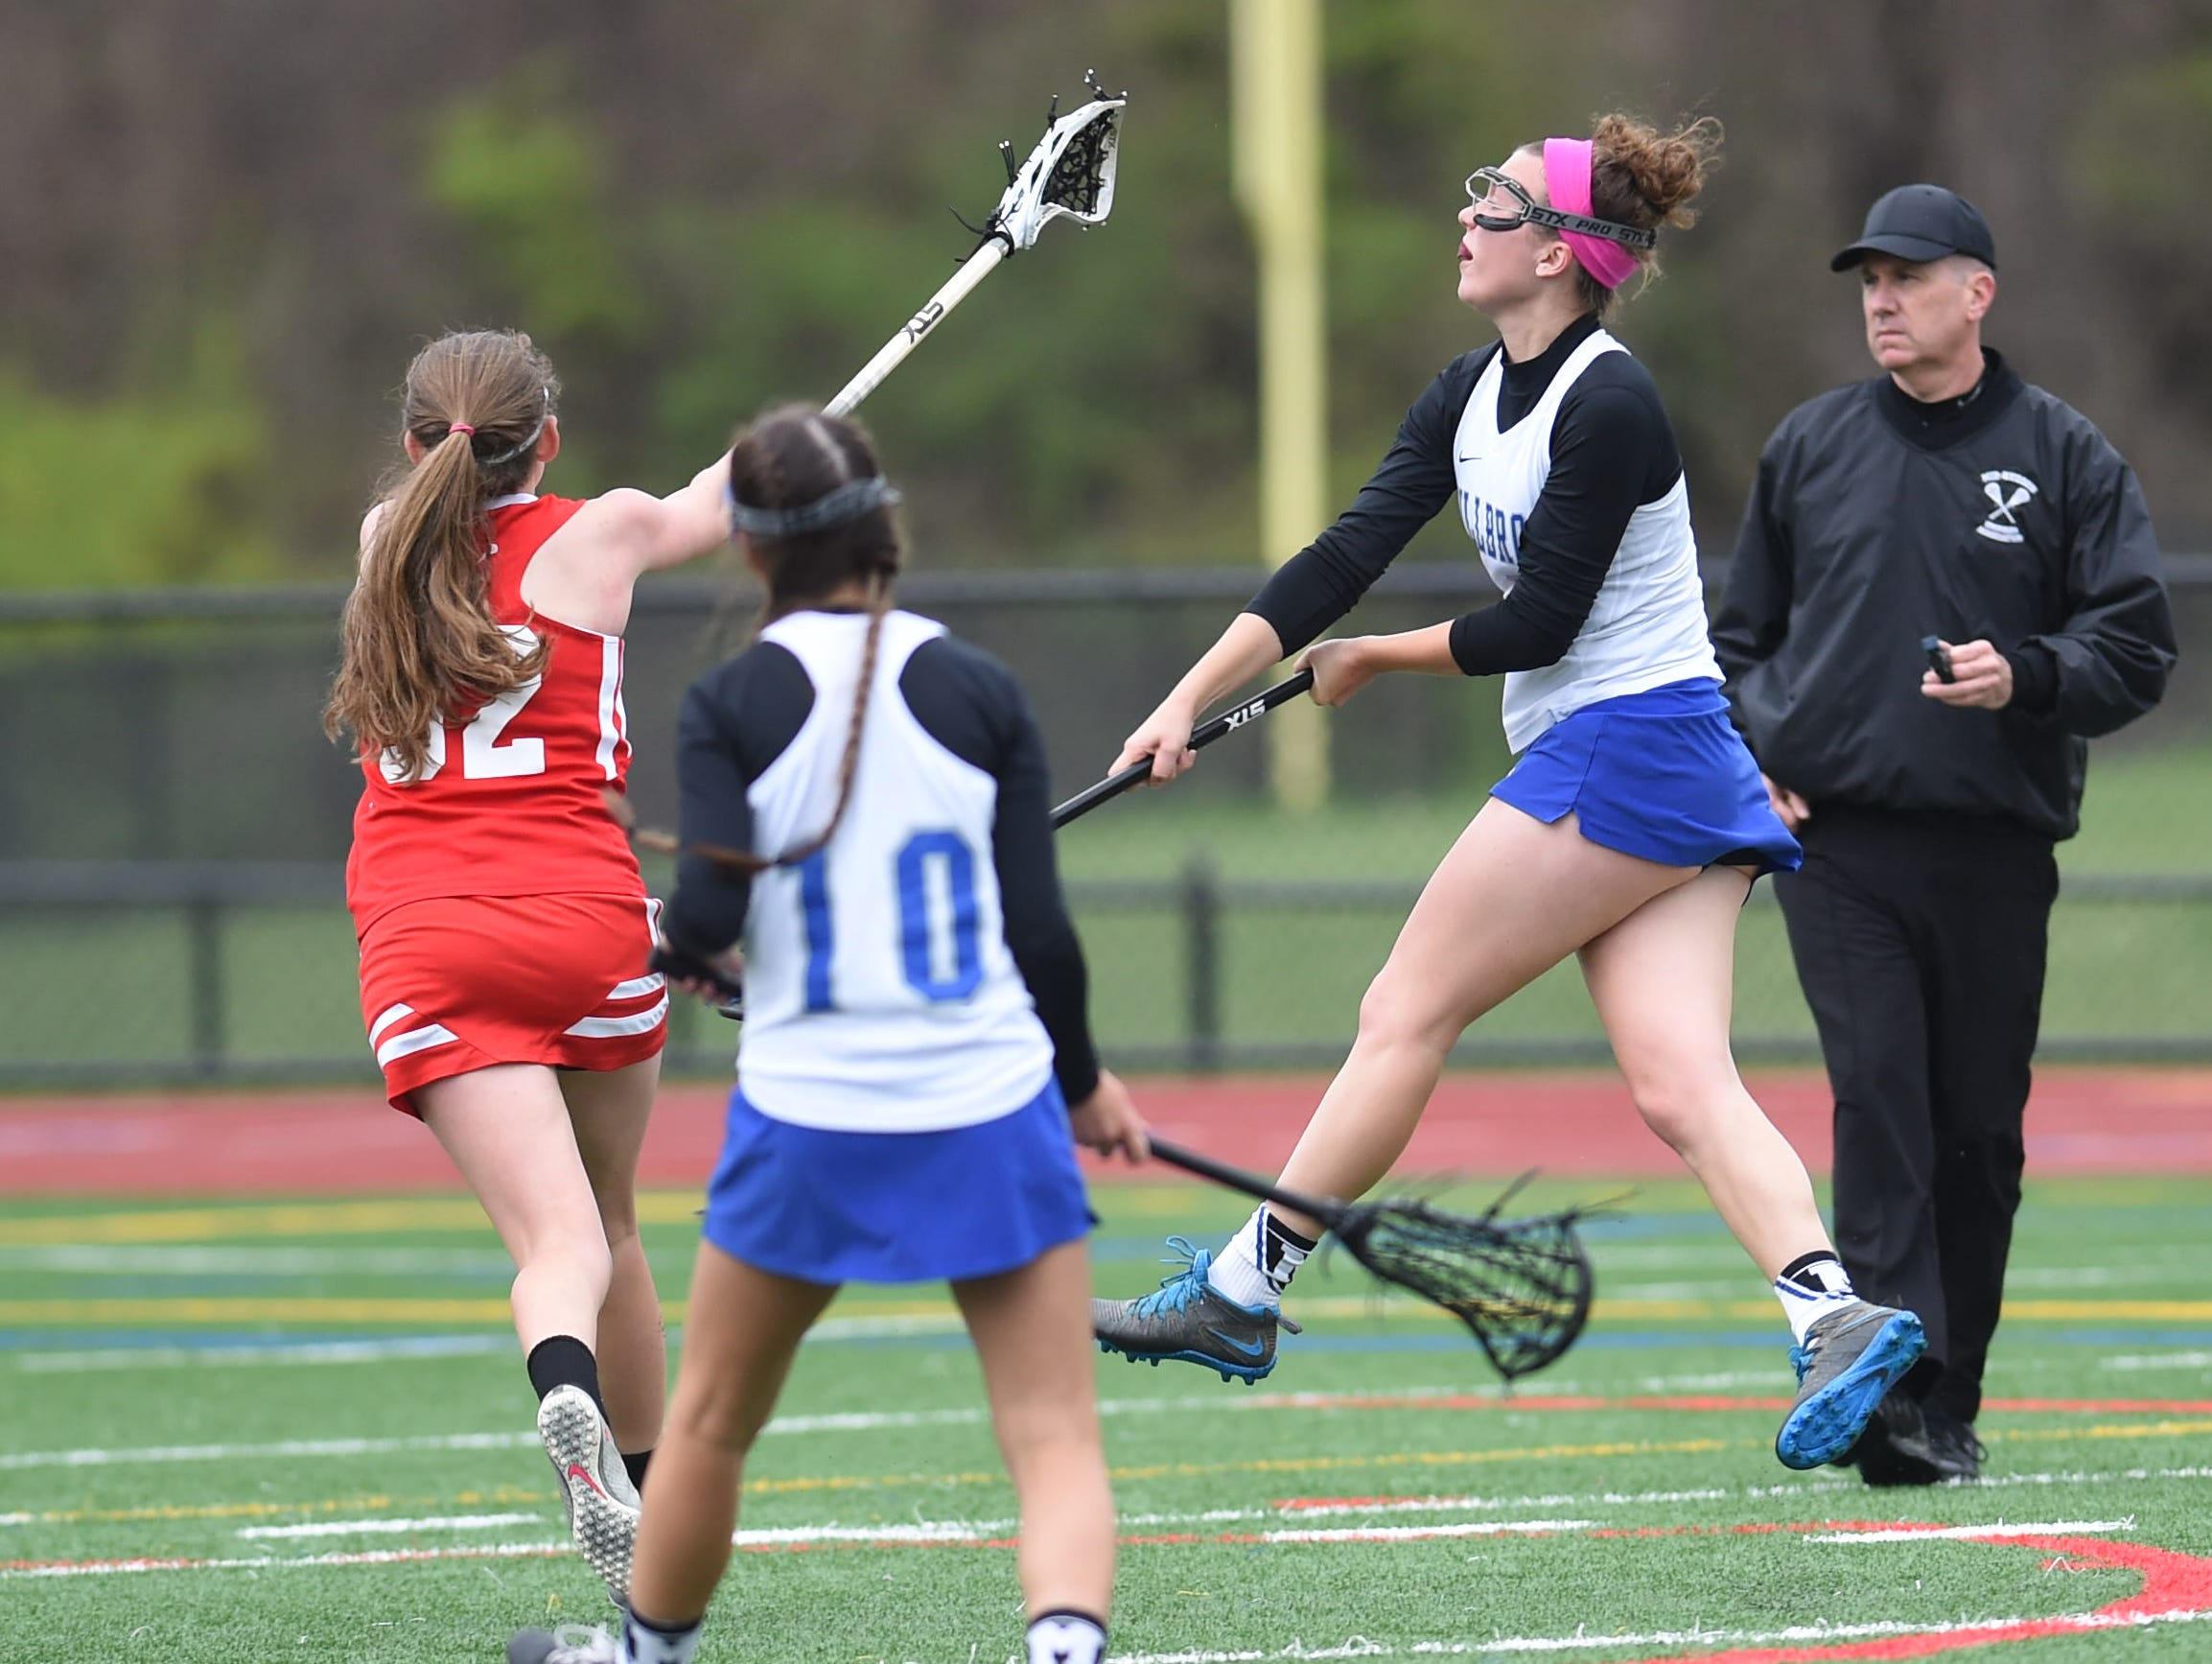 Millbrook's Liz Halpin shoots past Red Hook's Erin Hare to score her first goal during Friday's home game. Halpin went on to score a second goal, the team's fourth which won the game.